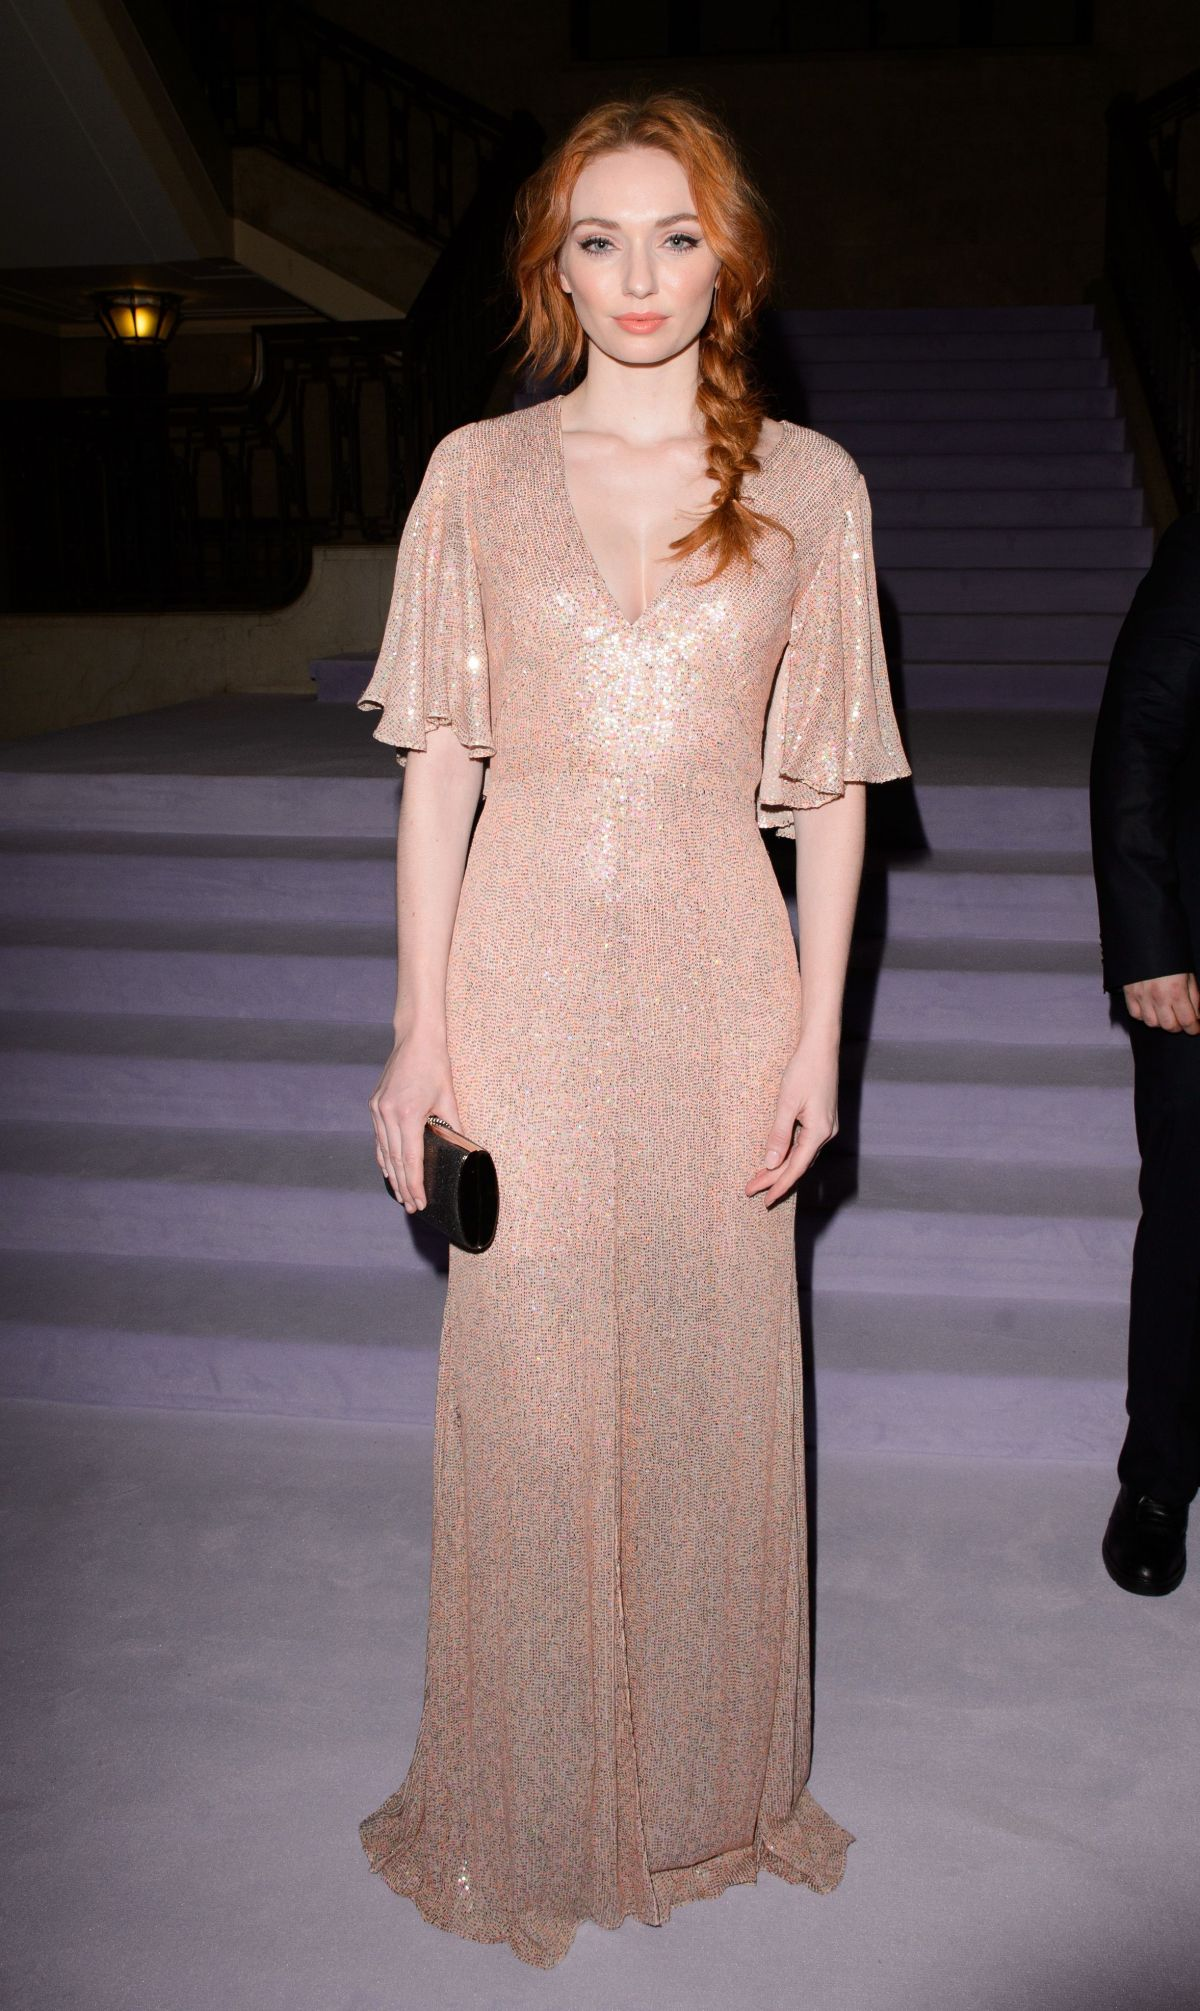 ELEANOR TOMLINSON at Temperley Fashion Show in London 02/19/2017